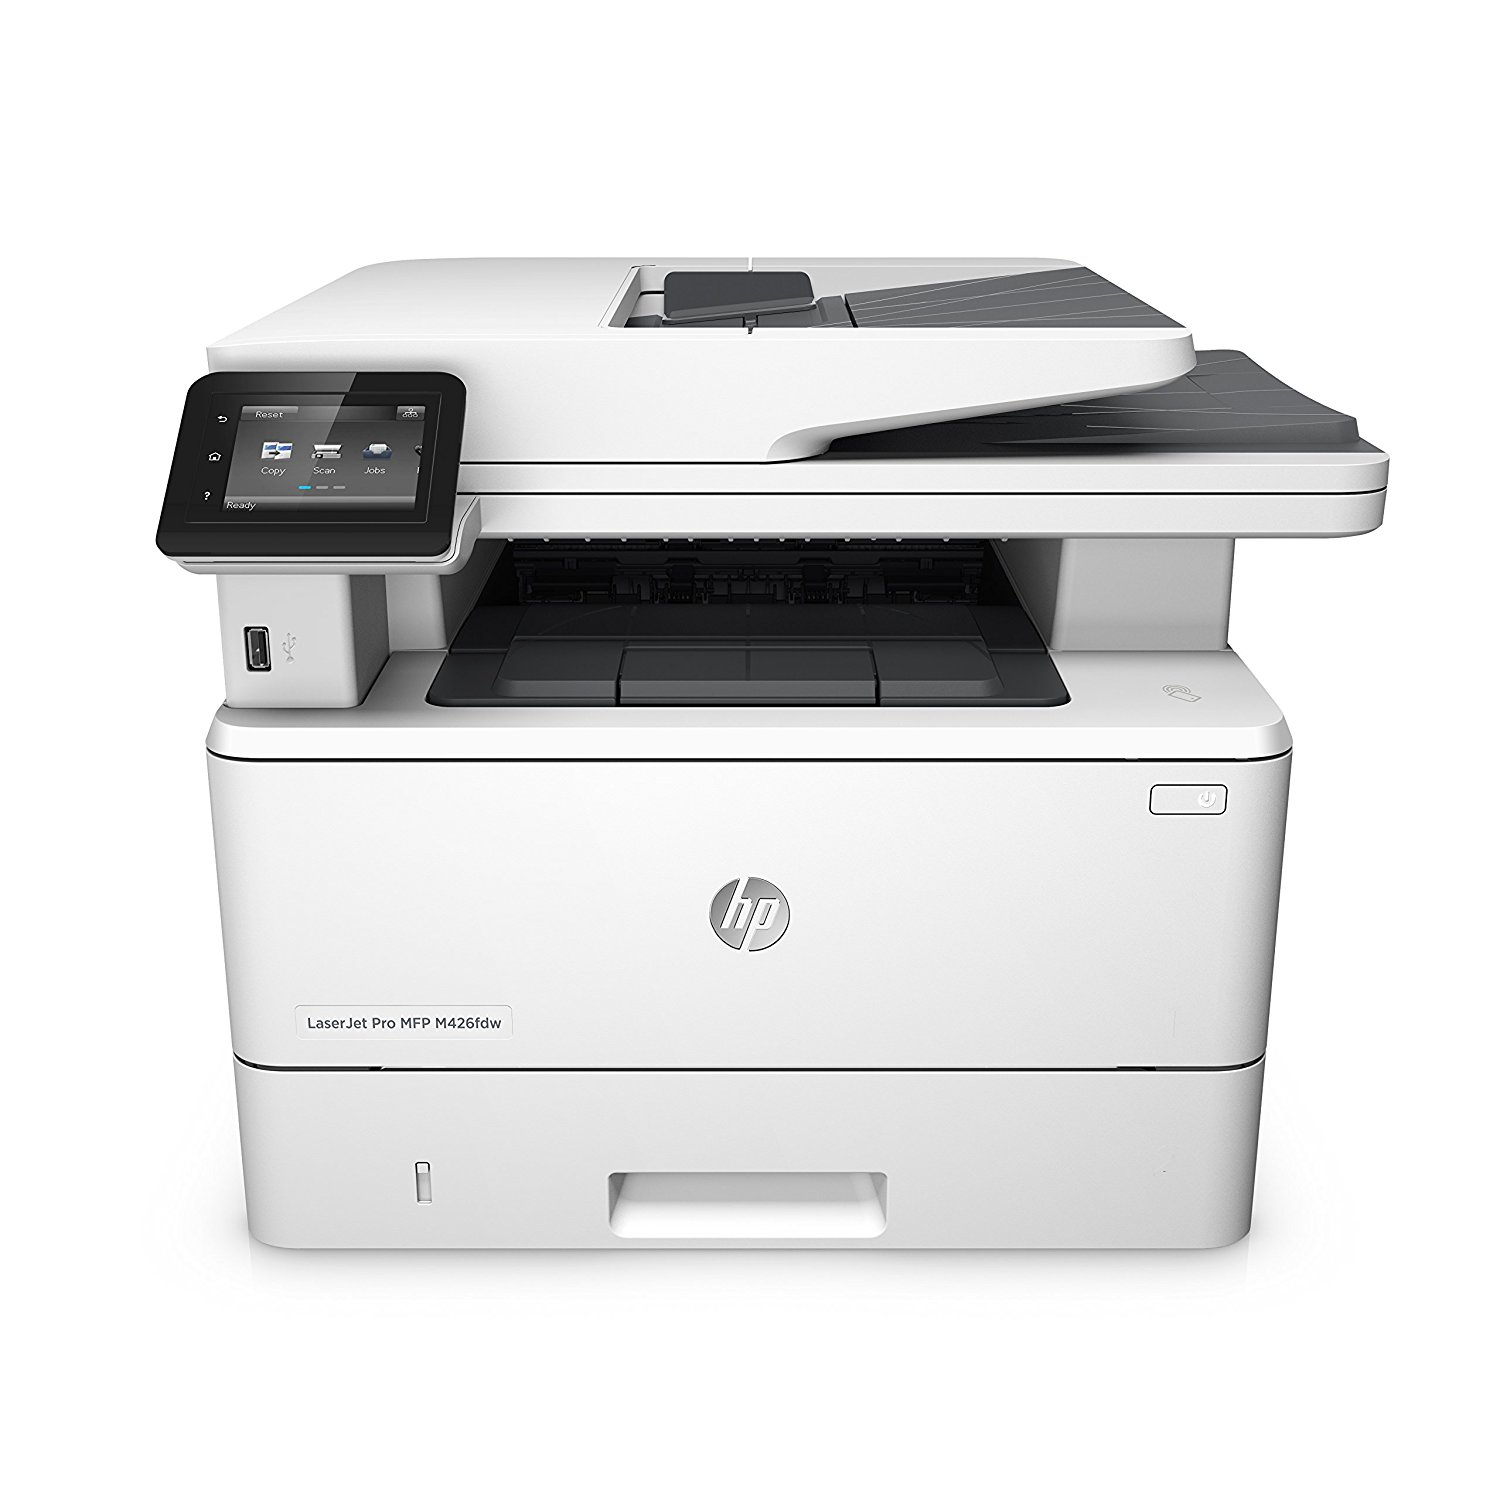 HP LaserJet Pro MFP Multifunction Wireless Laser Printer with Duplex Printing – Available With or Without Black Toner and Installation